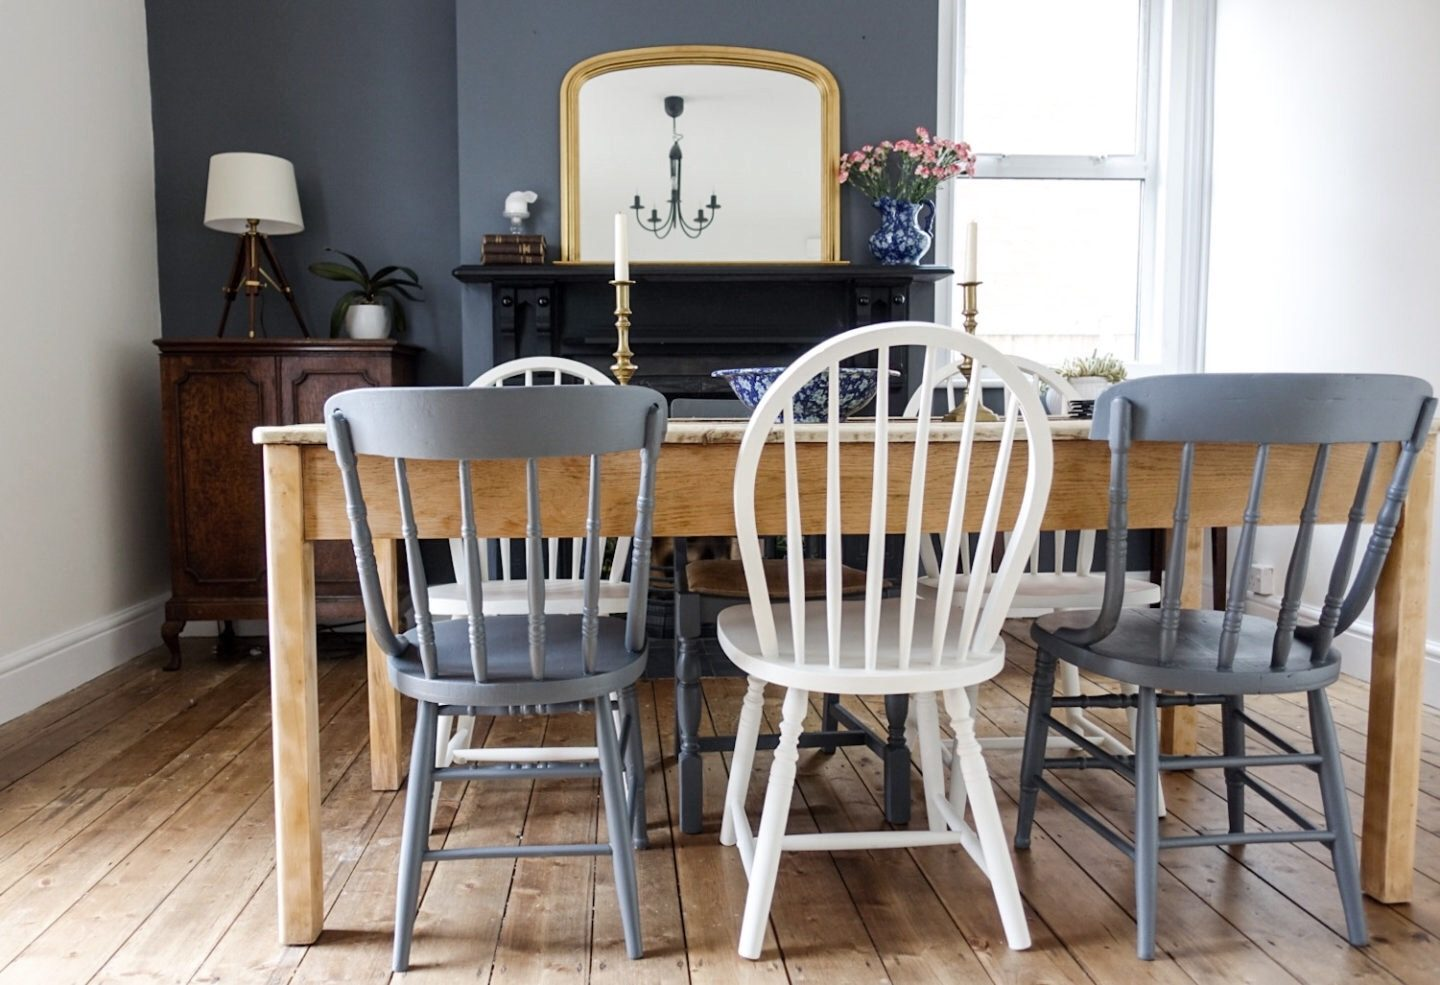 Home & interiors: eBay furniture